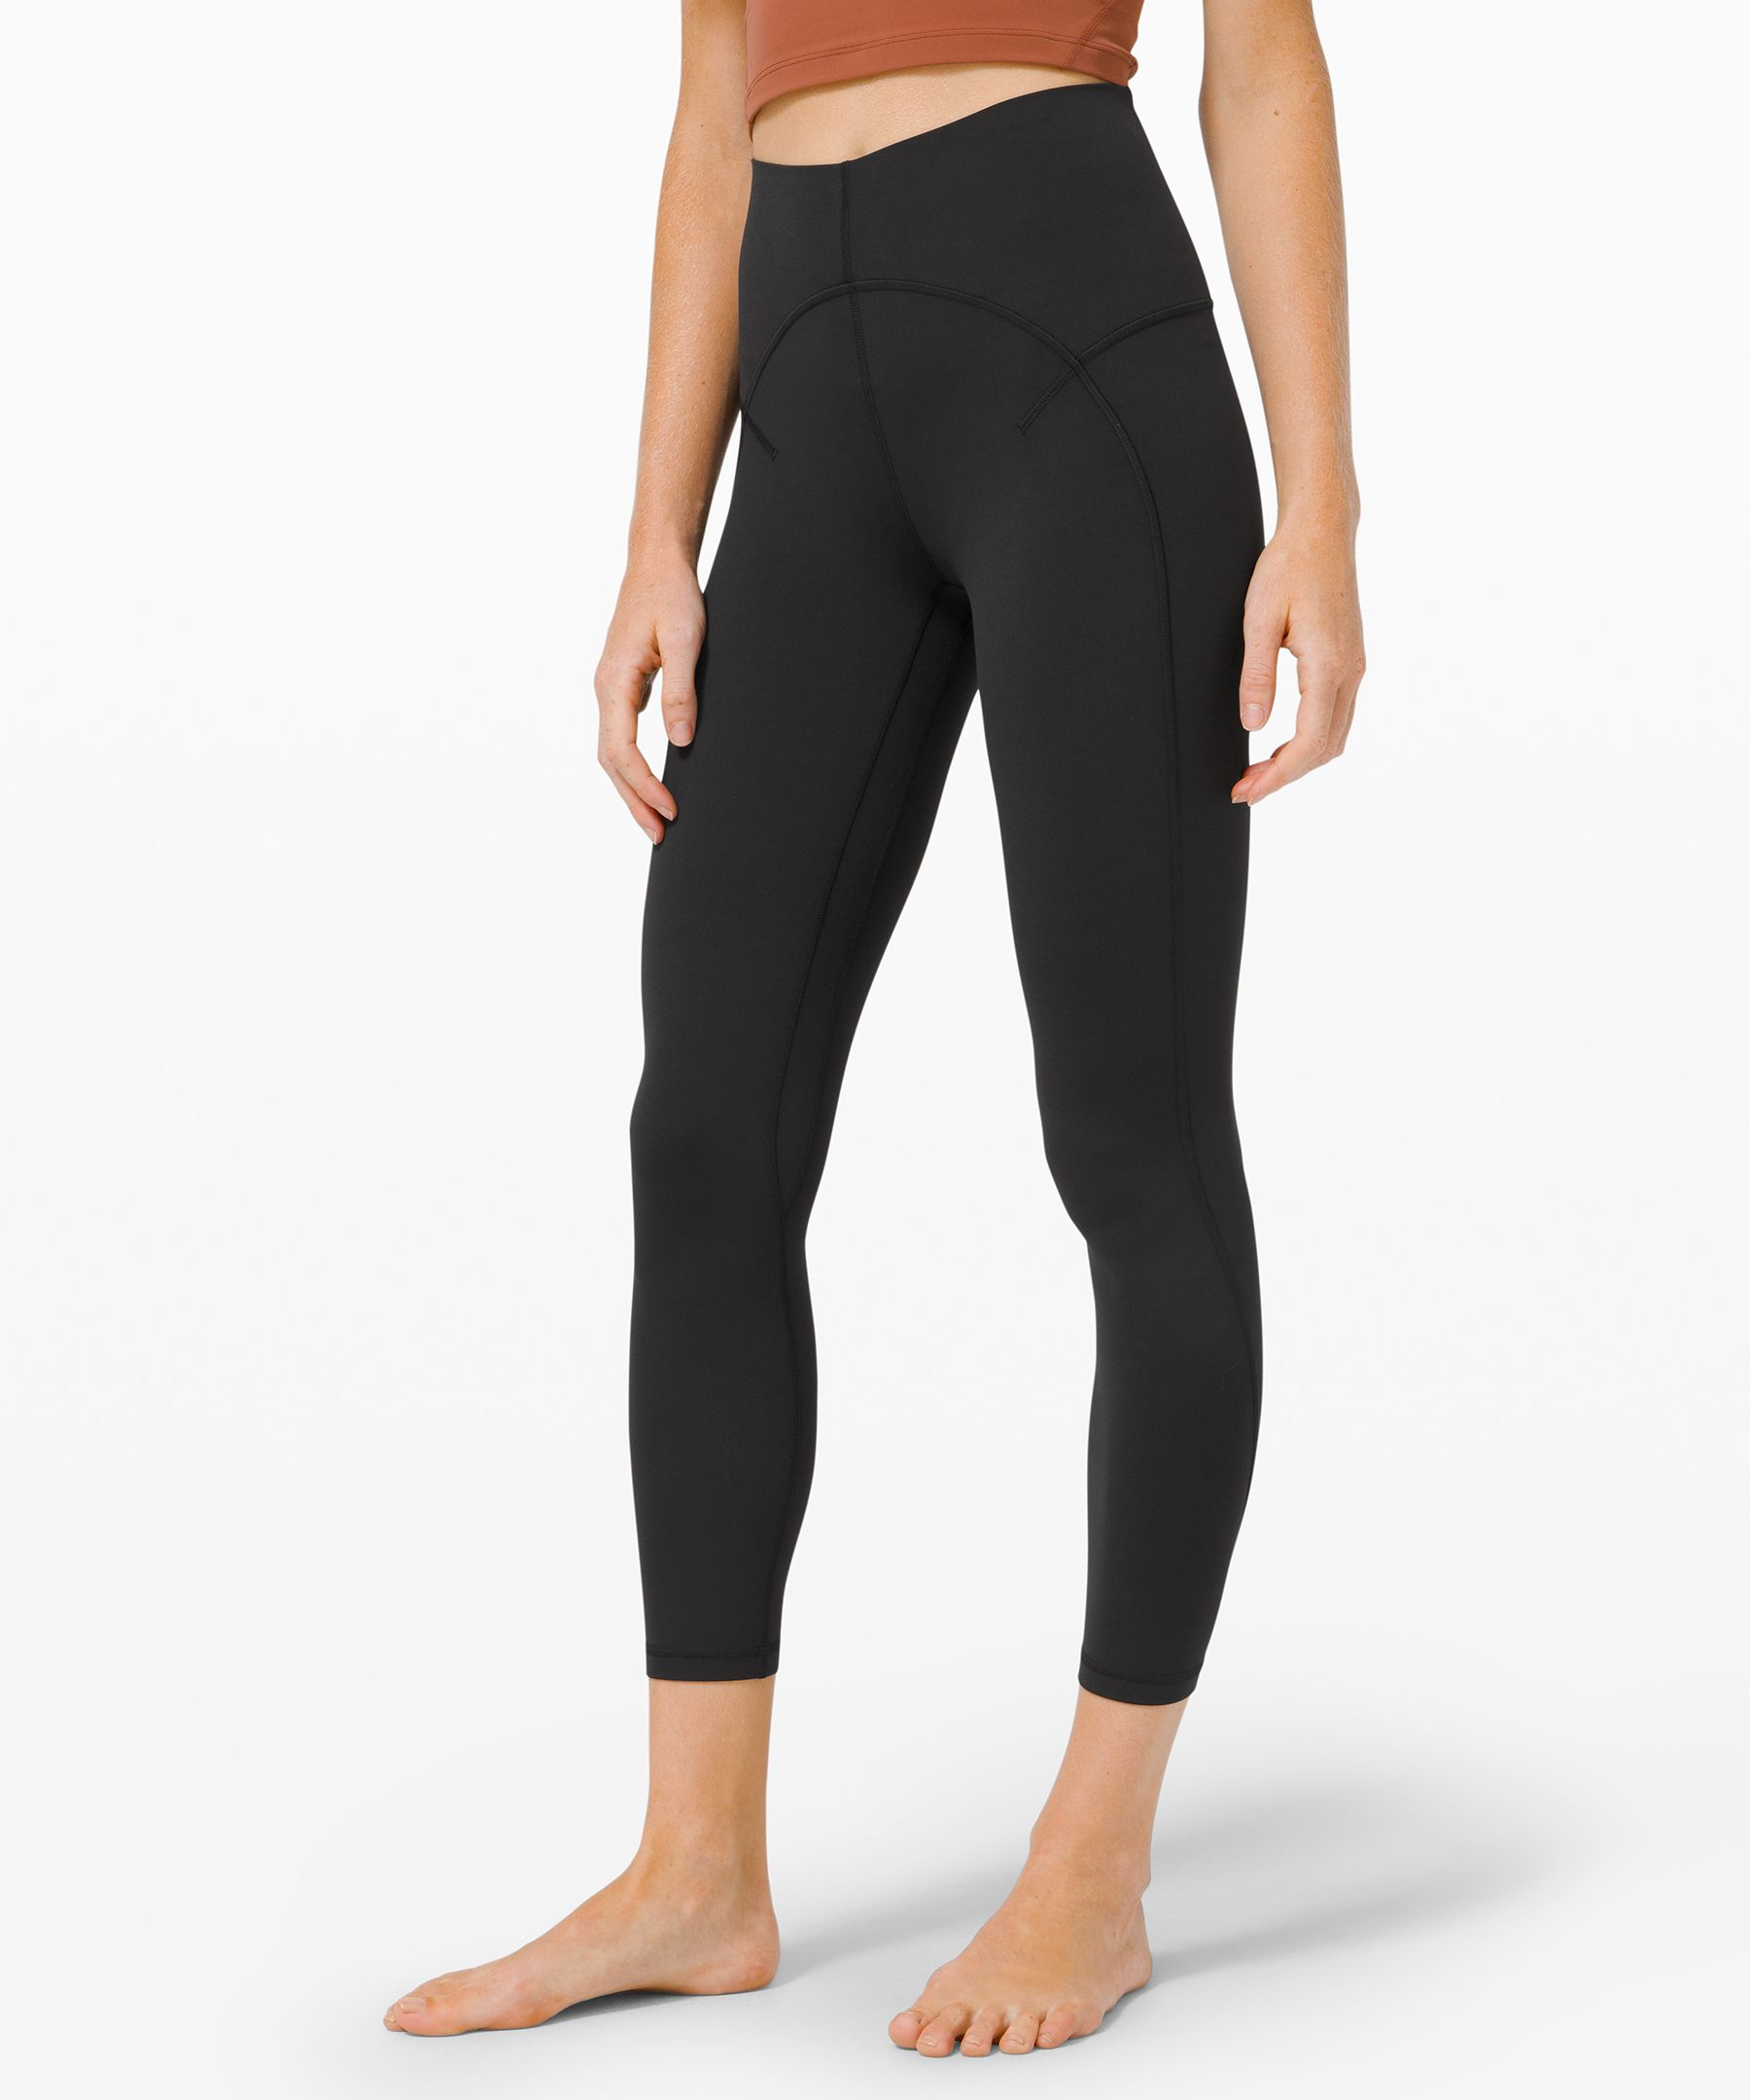 Unlimit High-Rise Tight 25